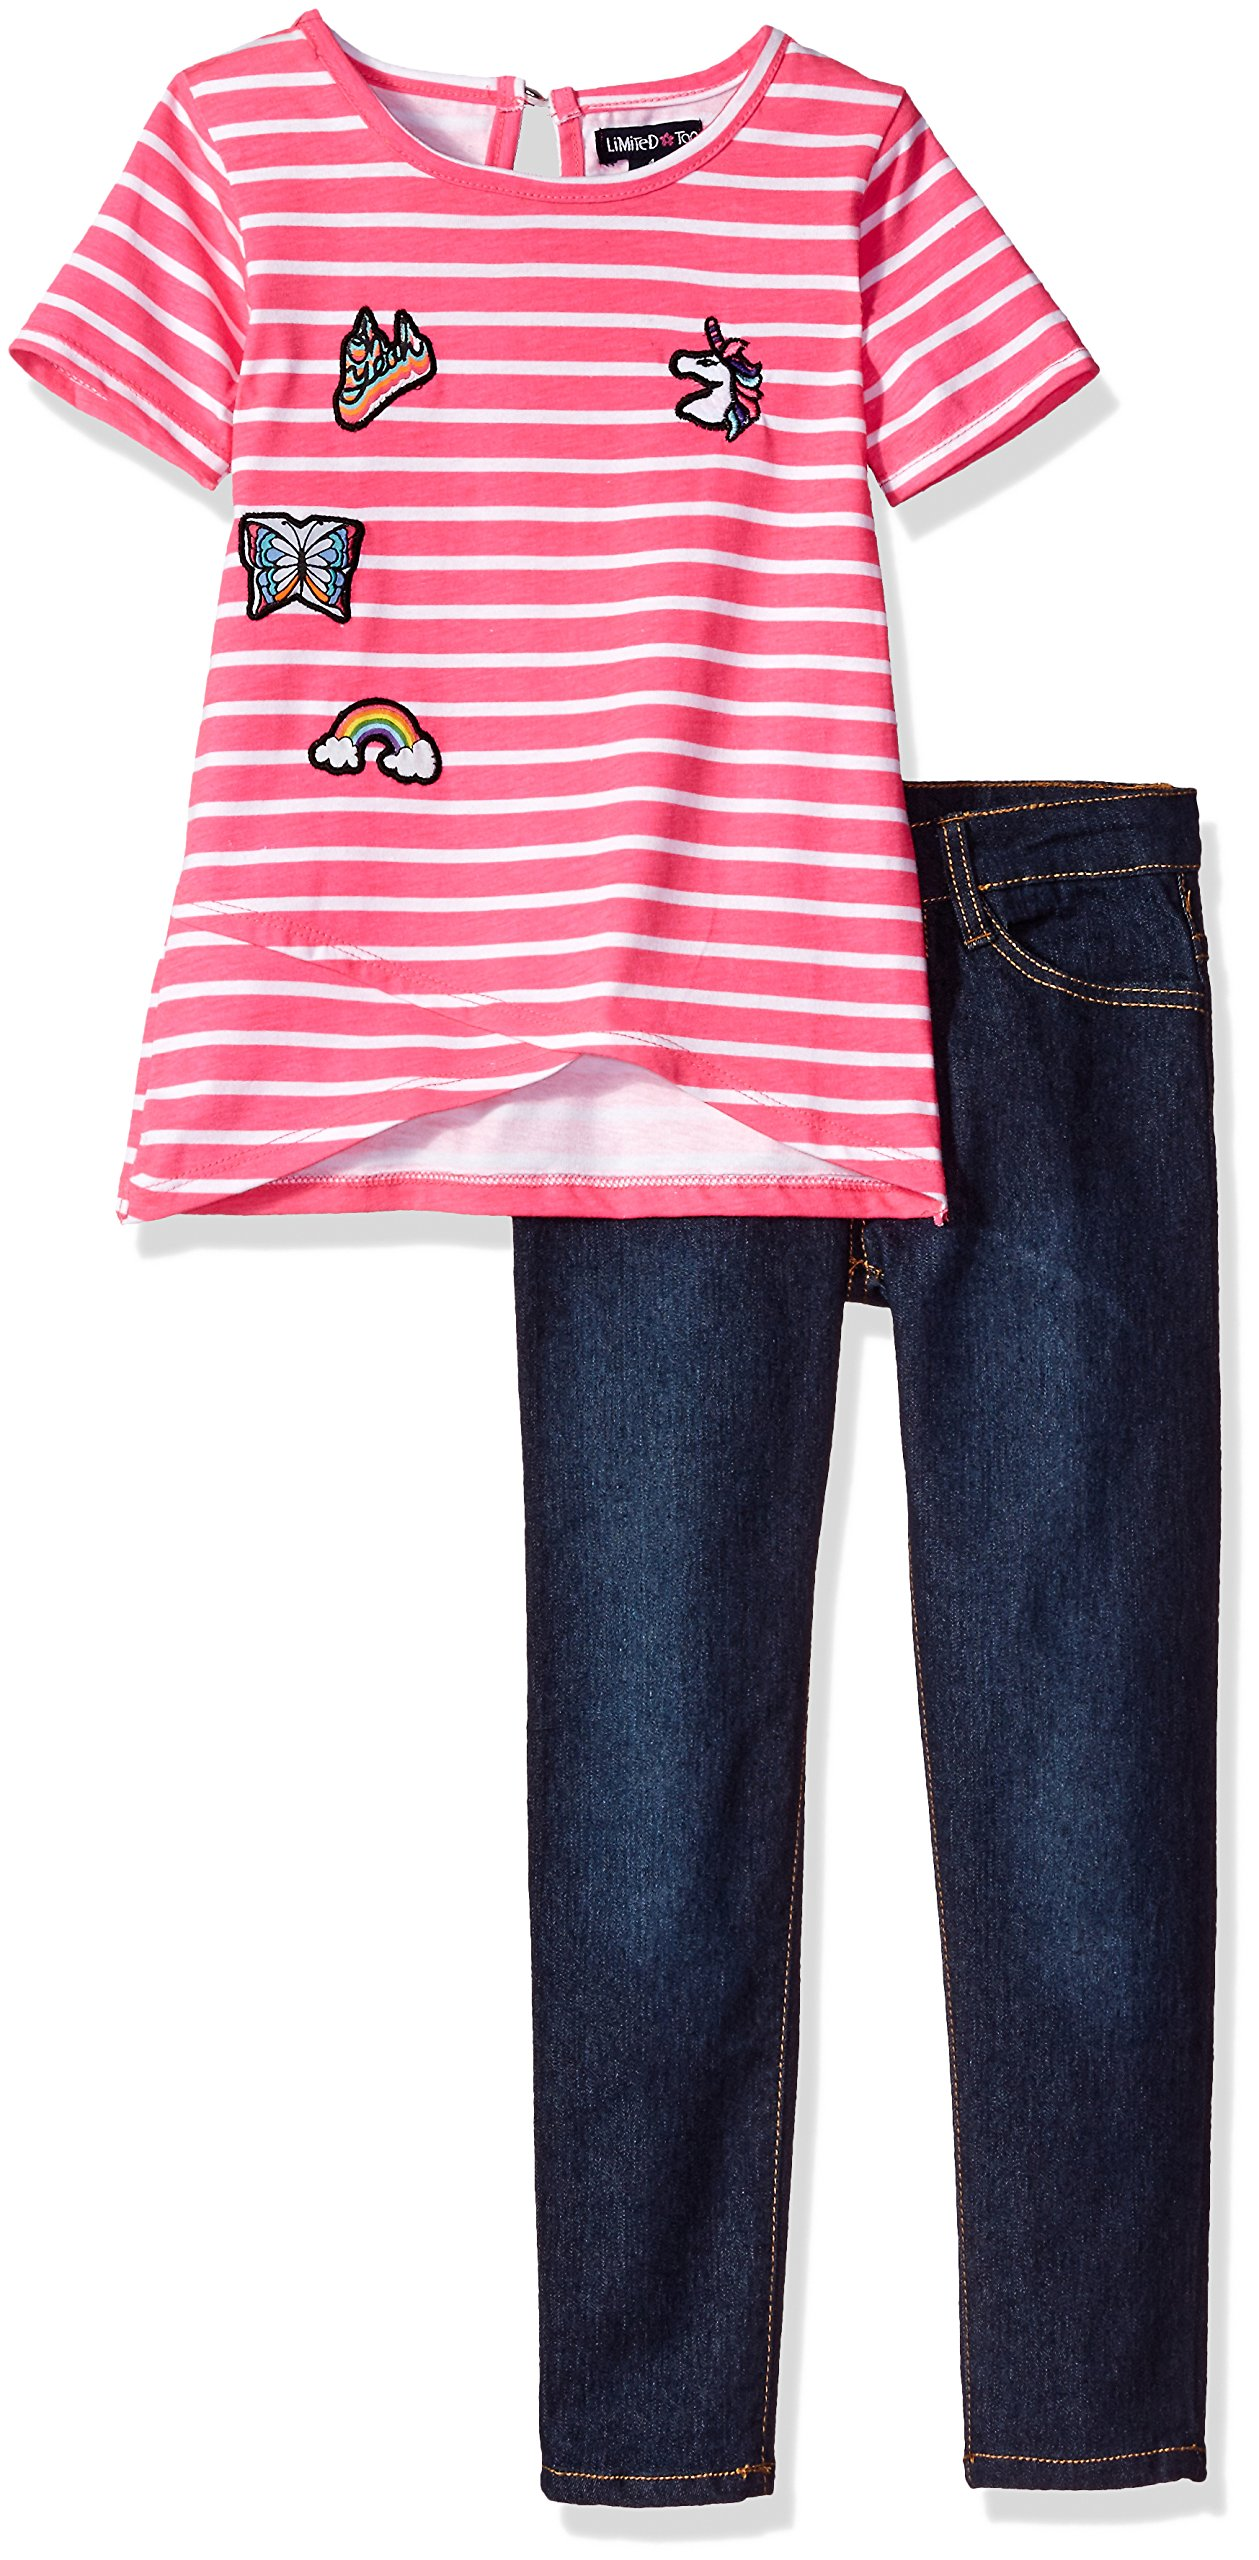 Limited Too Toddler Girls' Fashion Top and Pant Set (More Styles Available), Dark Blue Denim-Cbdd, 3T by Limited Too